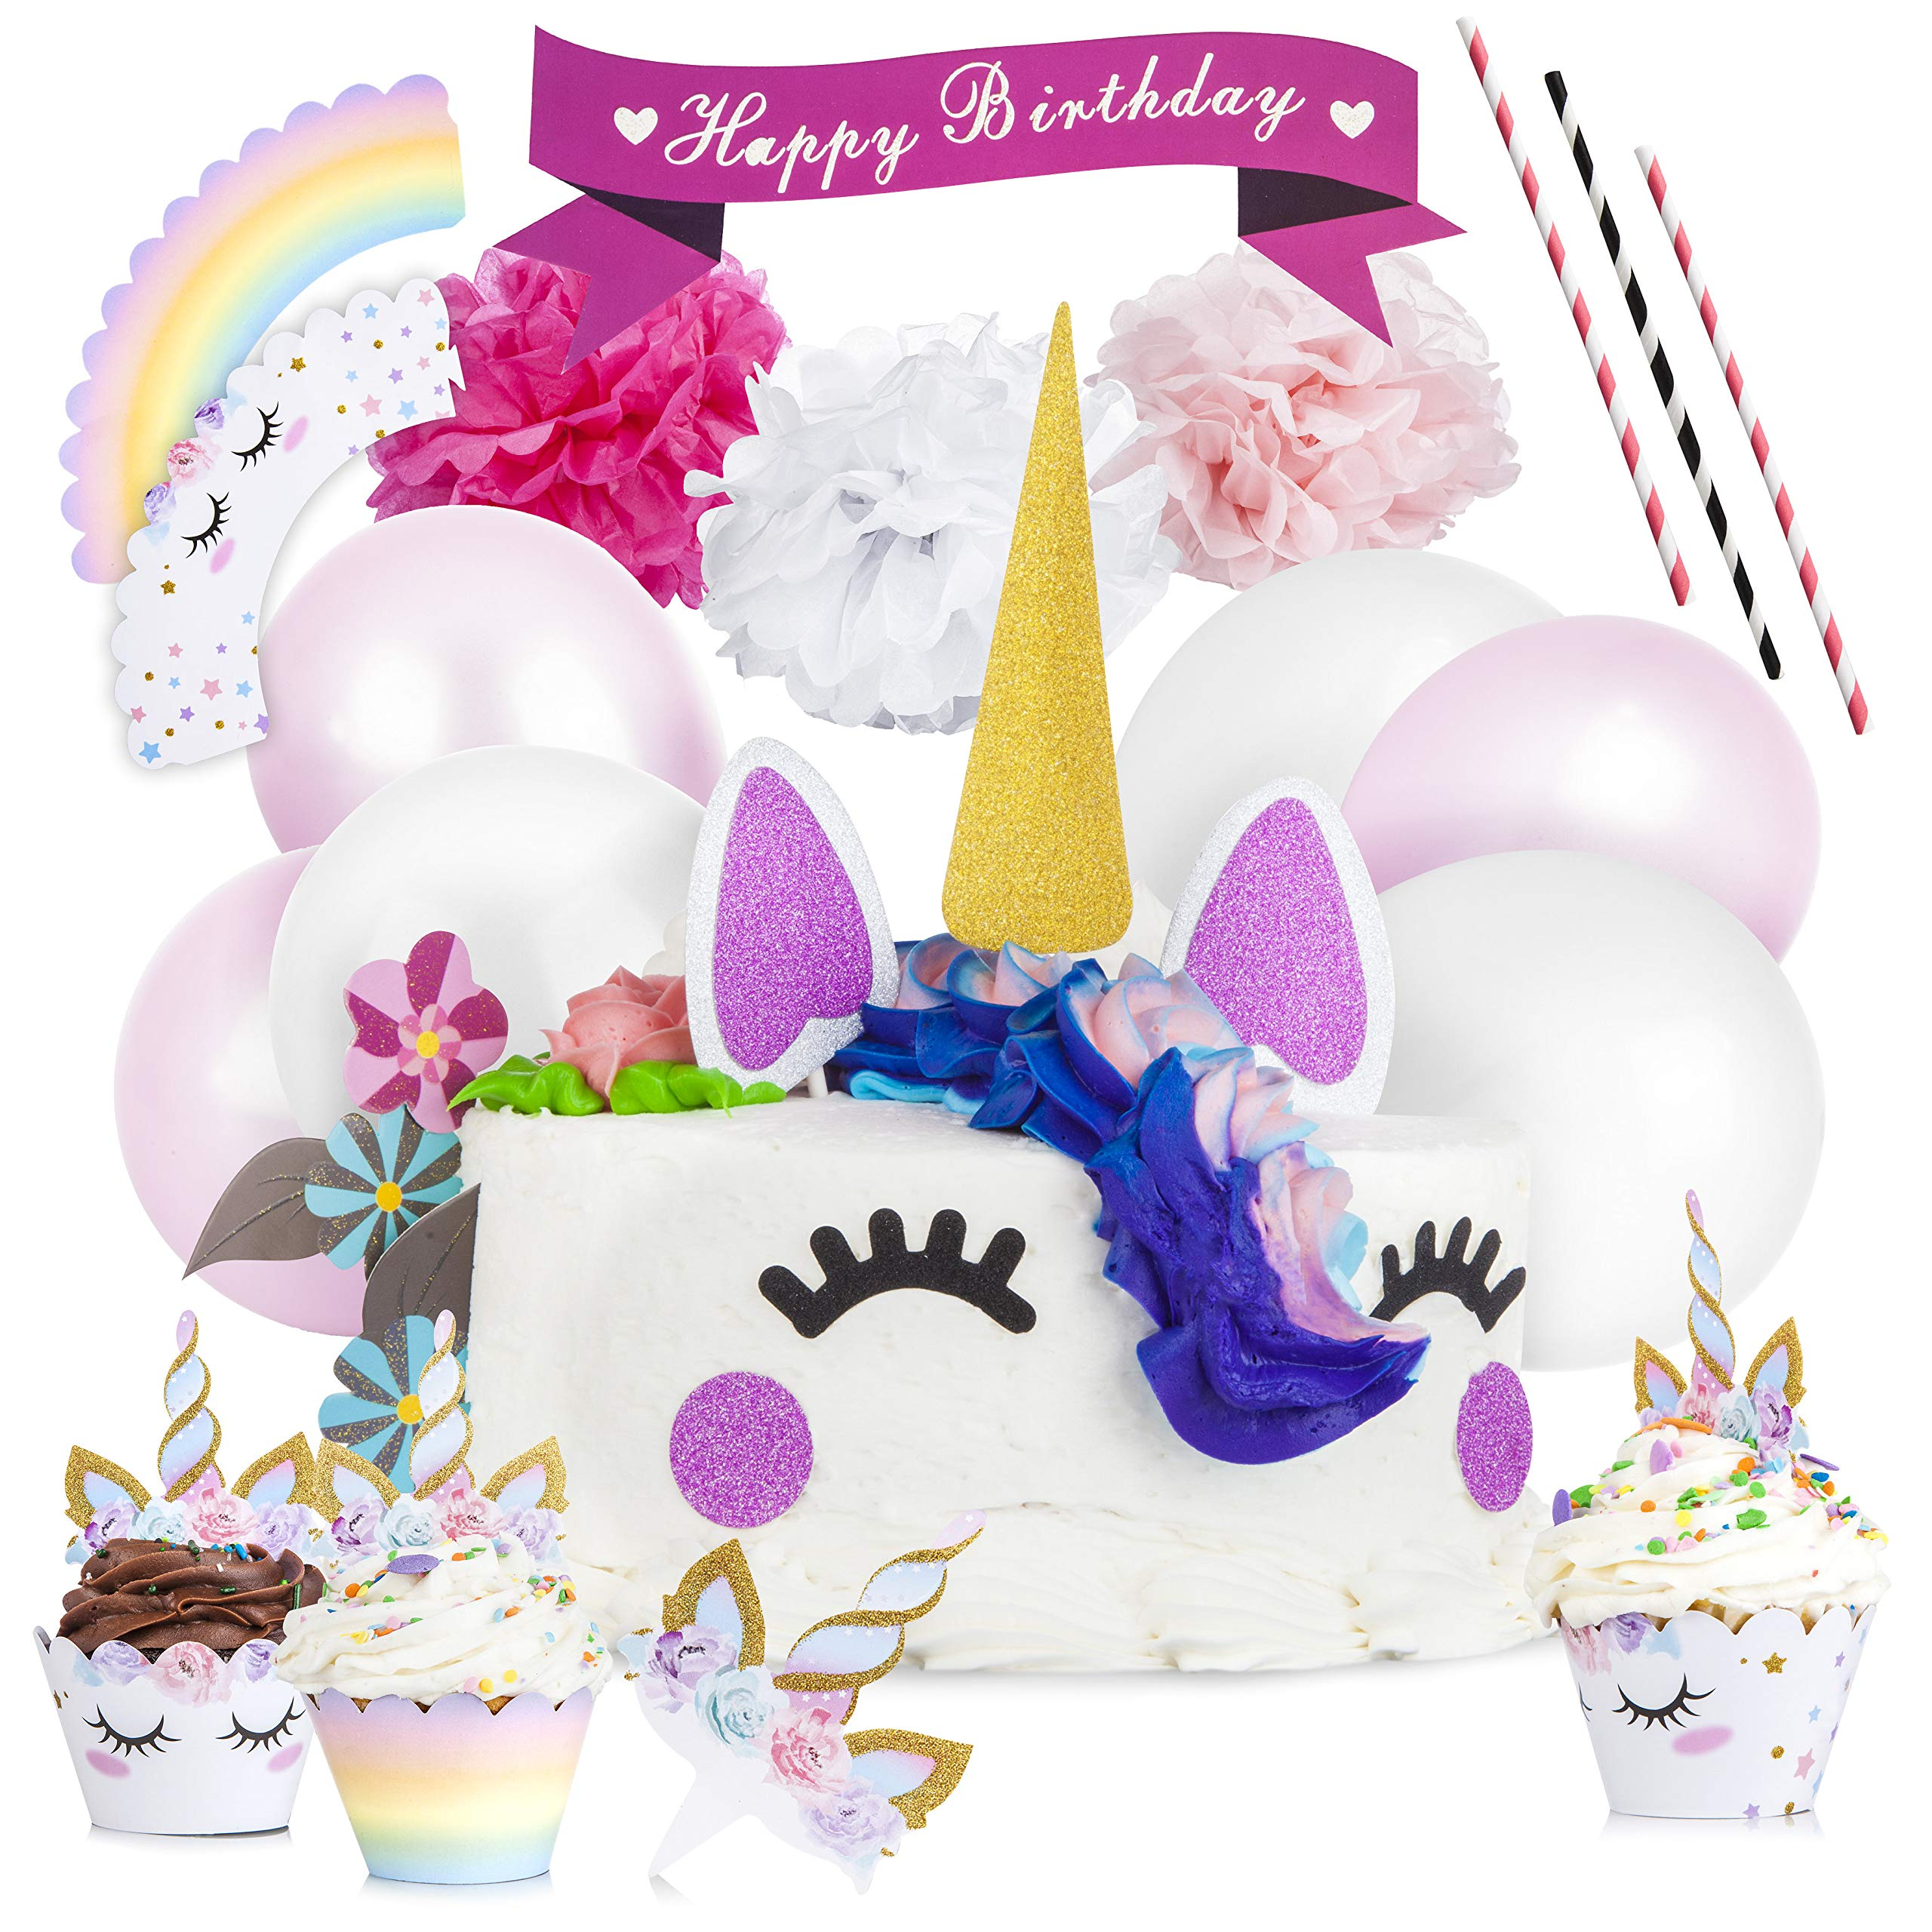 Unicorn Cake Topper and Cupcake Toppers & Wrappers (24) Unicorn Party Supplies with Eyelashes, Unicorns Horn, Ears, Cake Decorations Kit, Tissue Flowers, Balloon Set - Perfect for Birthday by Ross & Chris (Image #1)